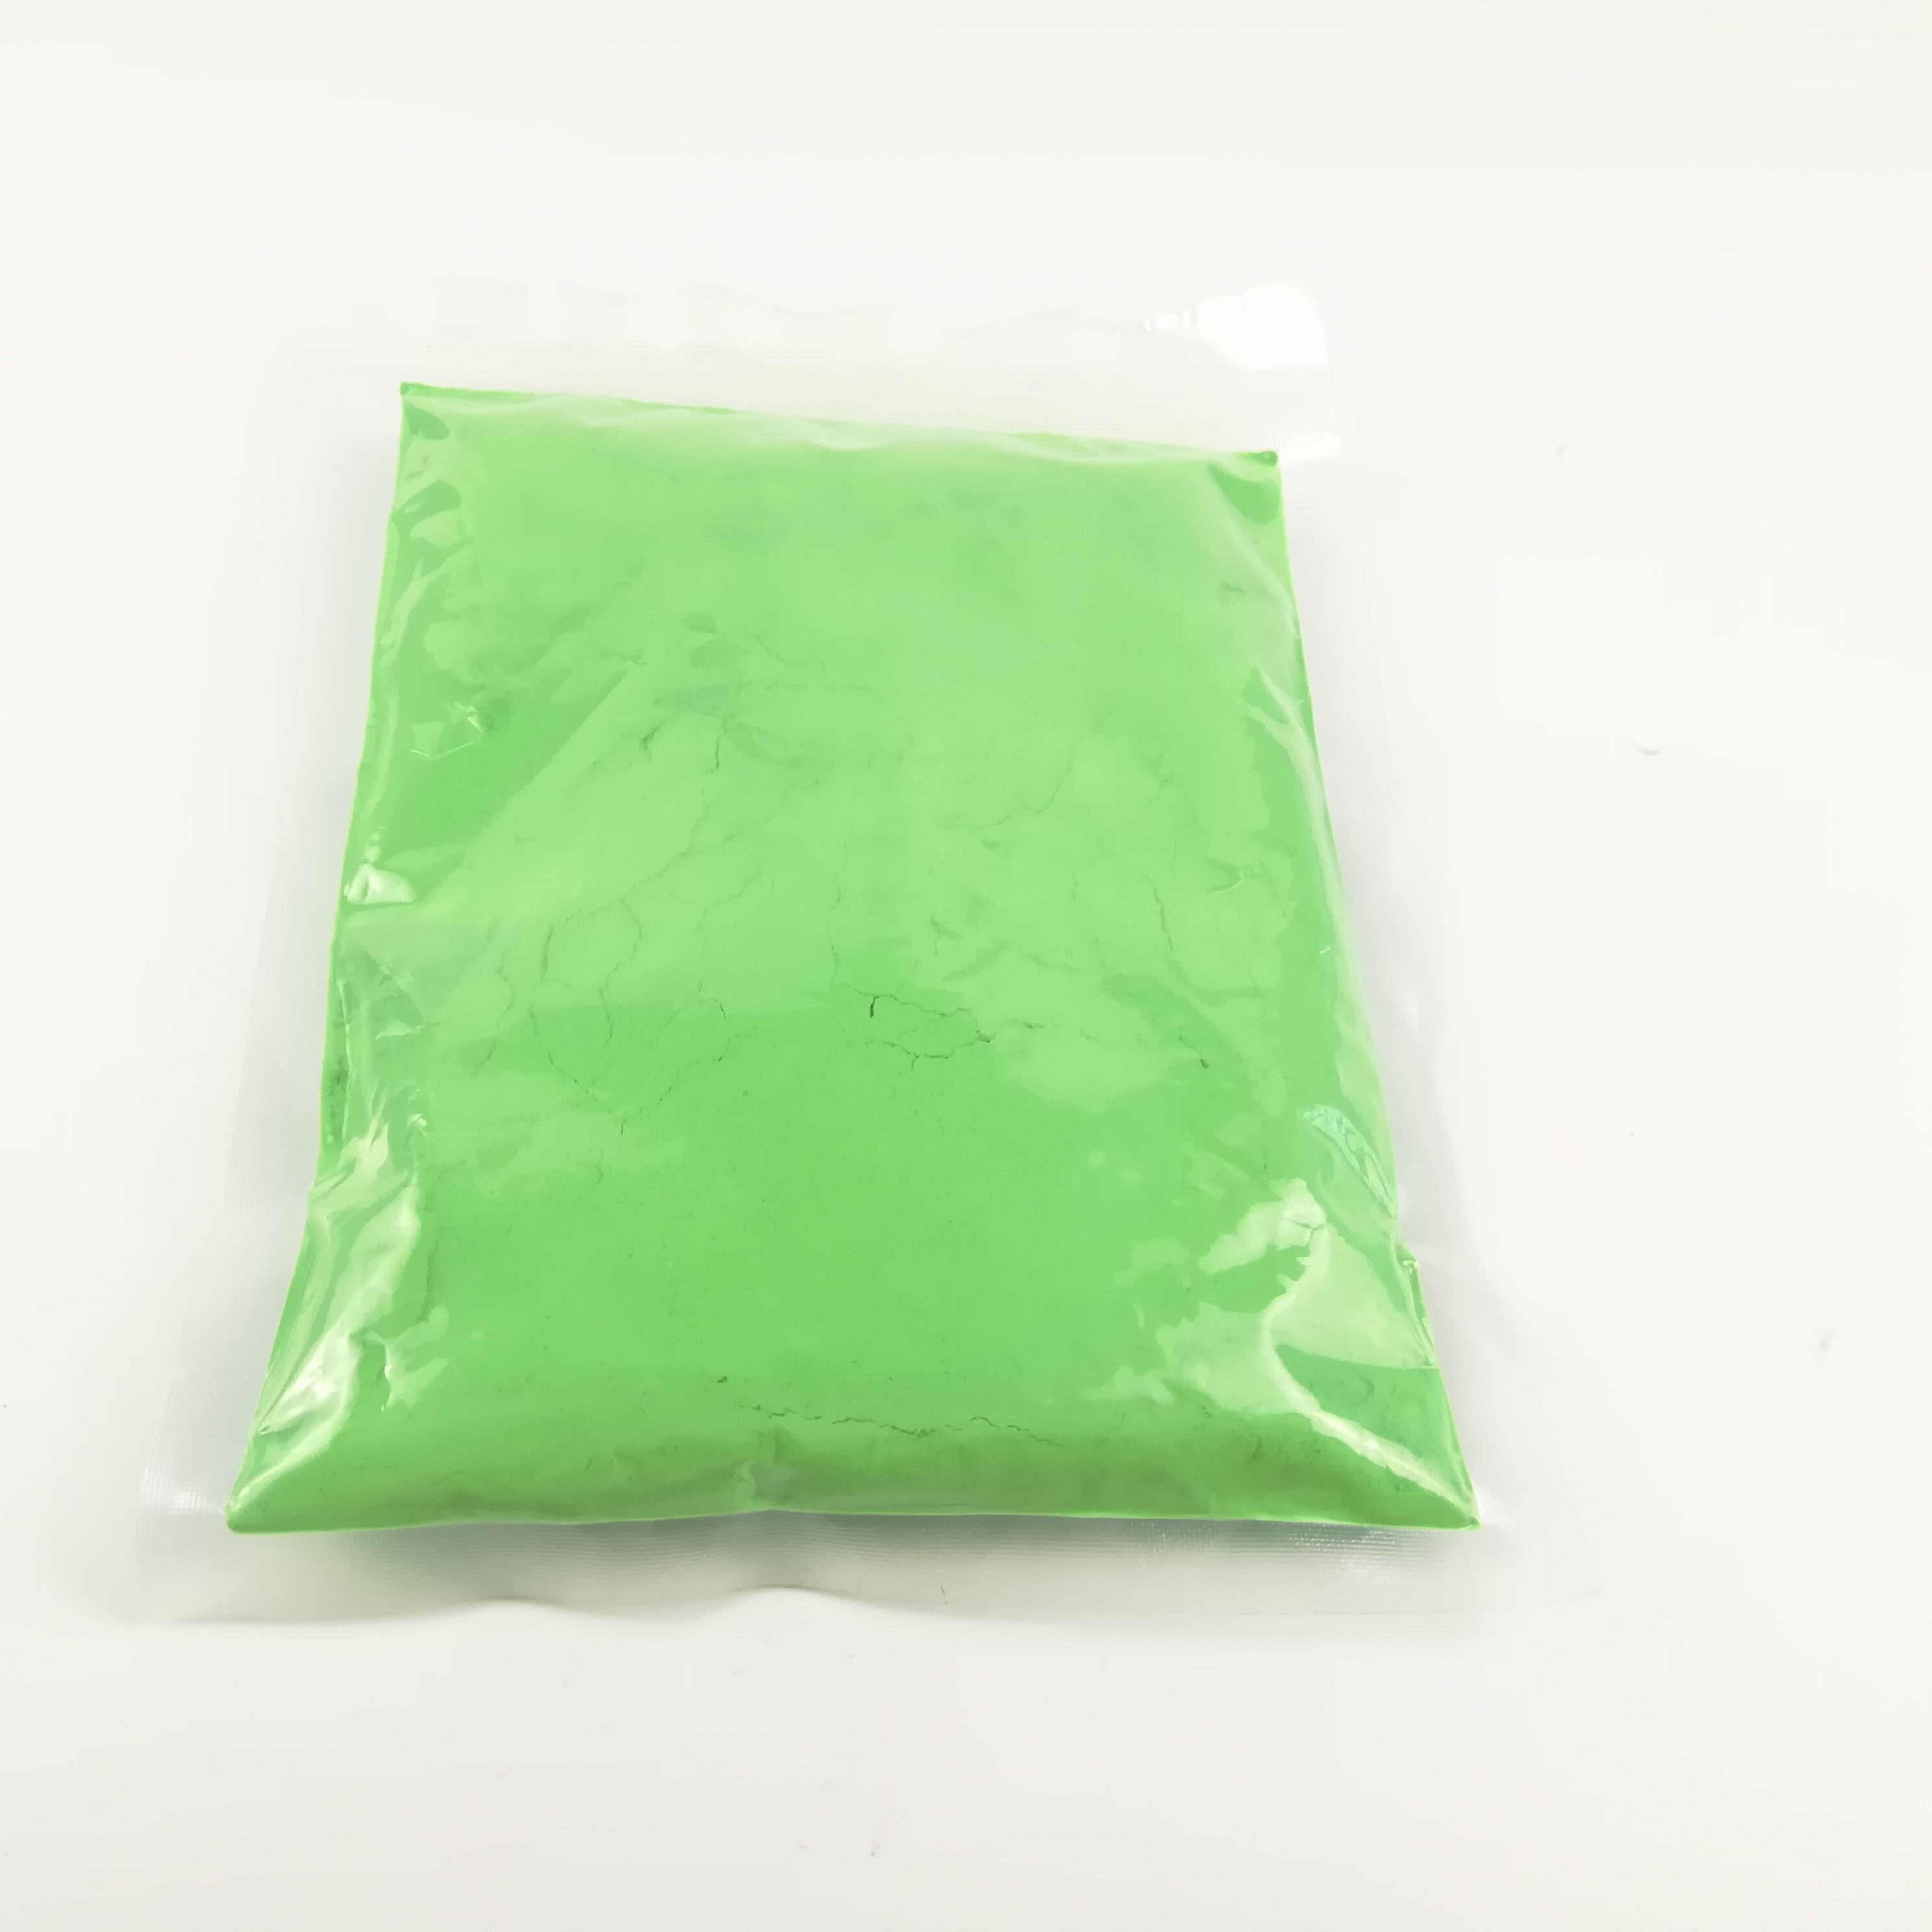 500g Holi Gulal Powder for Festival and Party